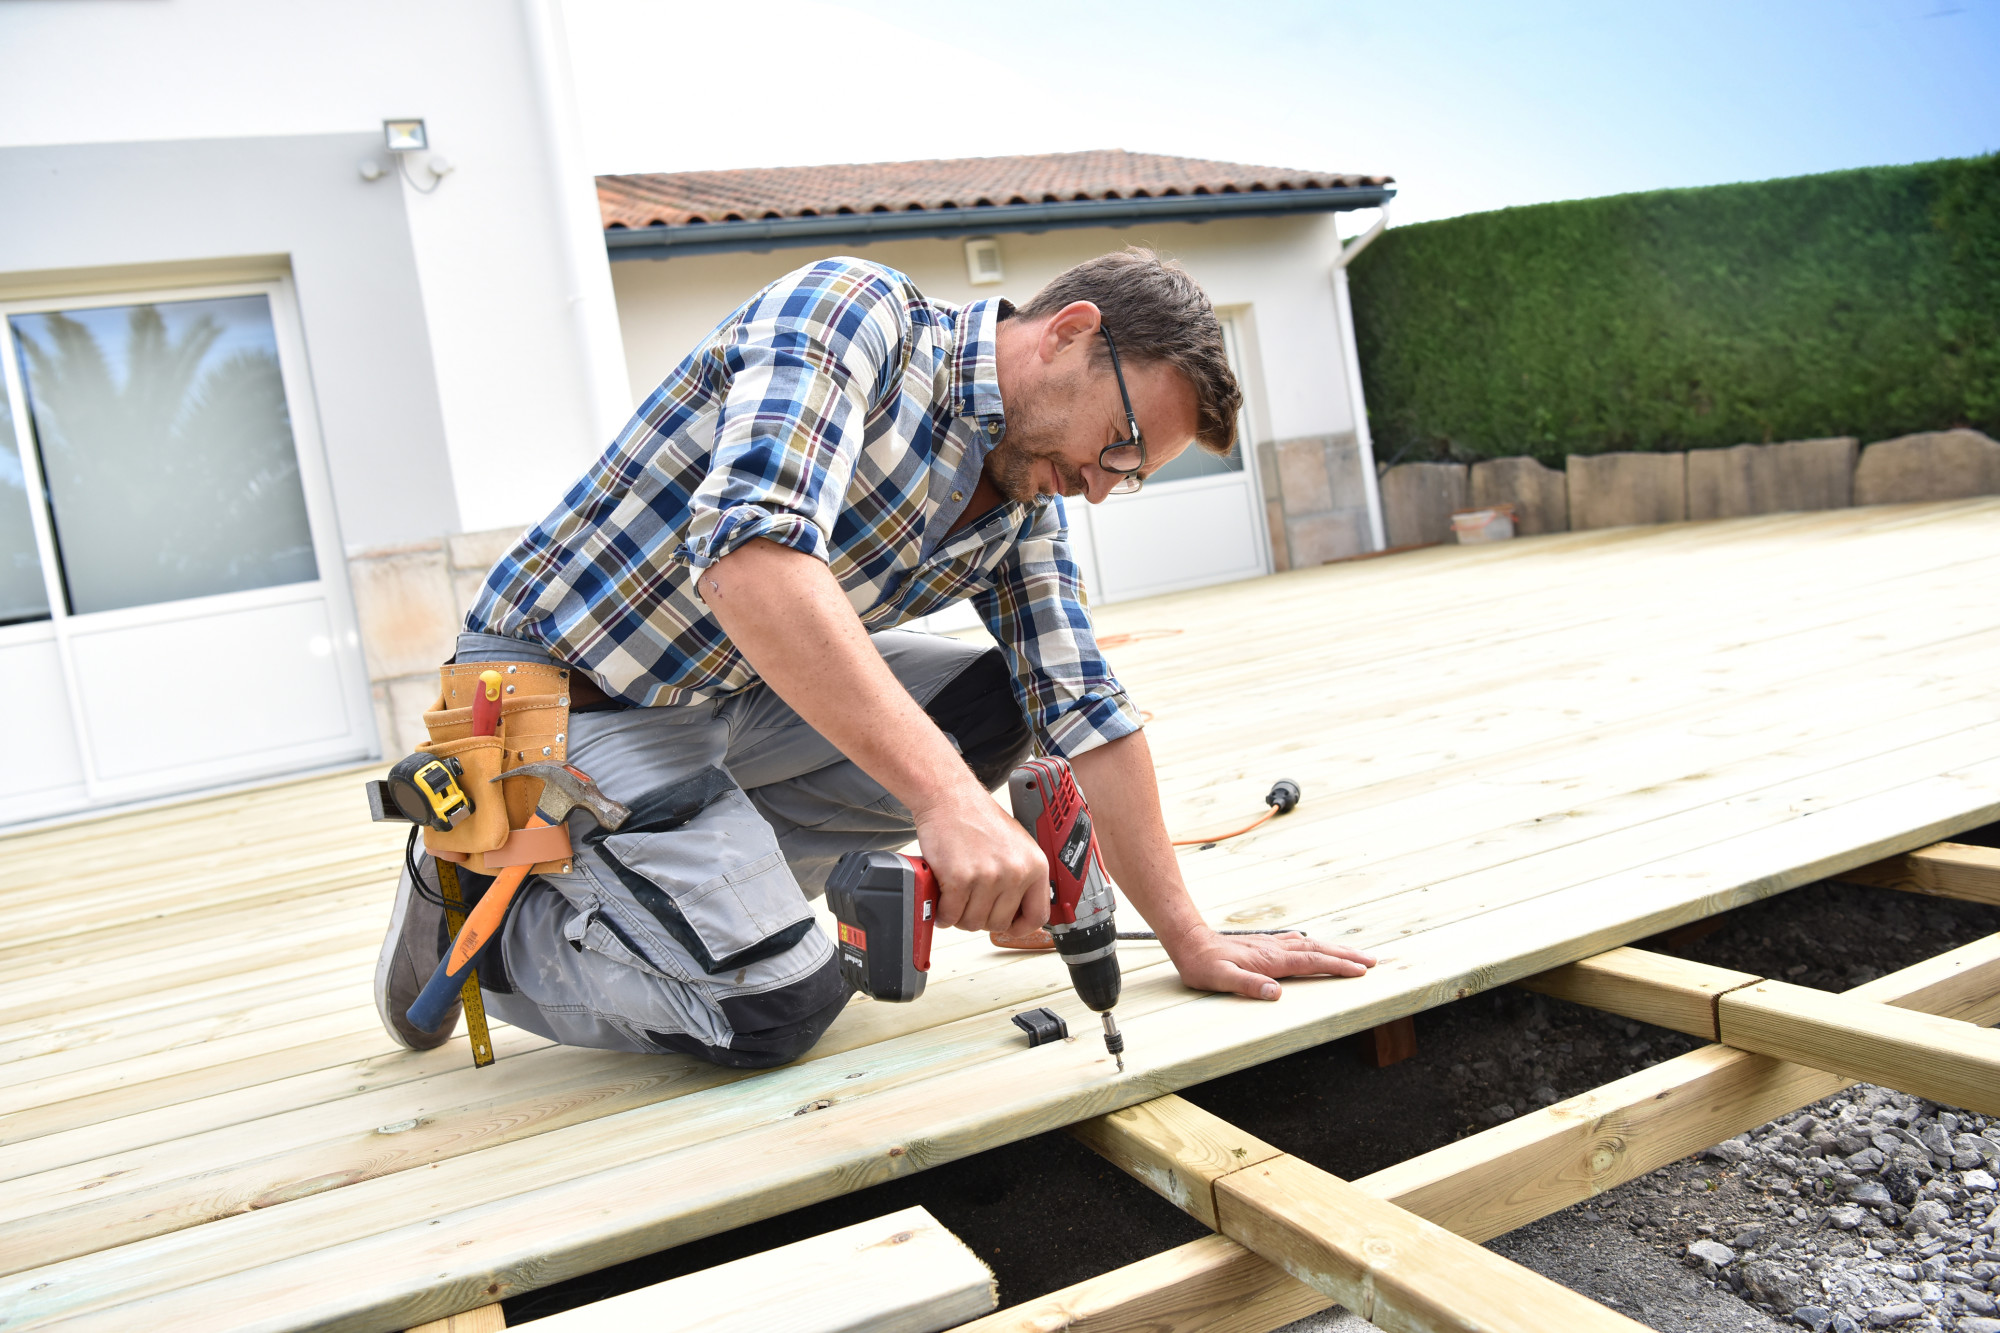 Are you looking for different ways to restore your deck? Make it look brand new? Click here to learn more about the best ways to restore deck wood.